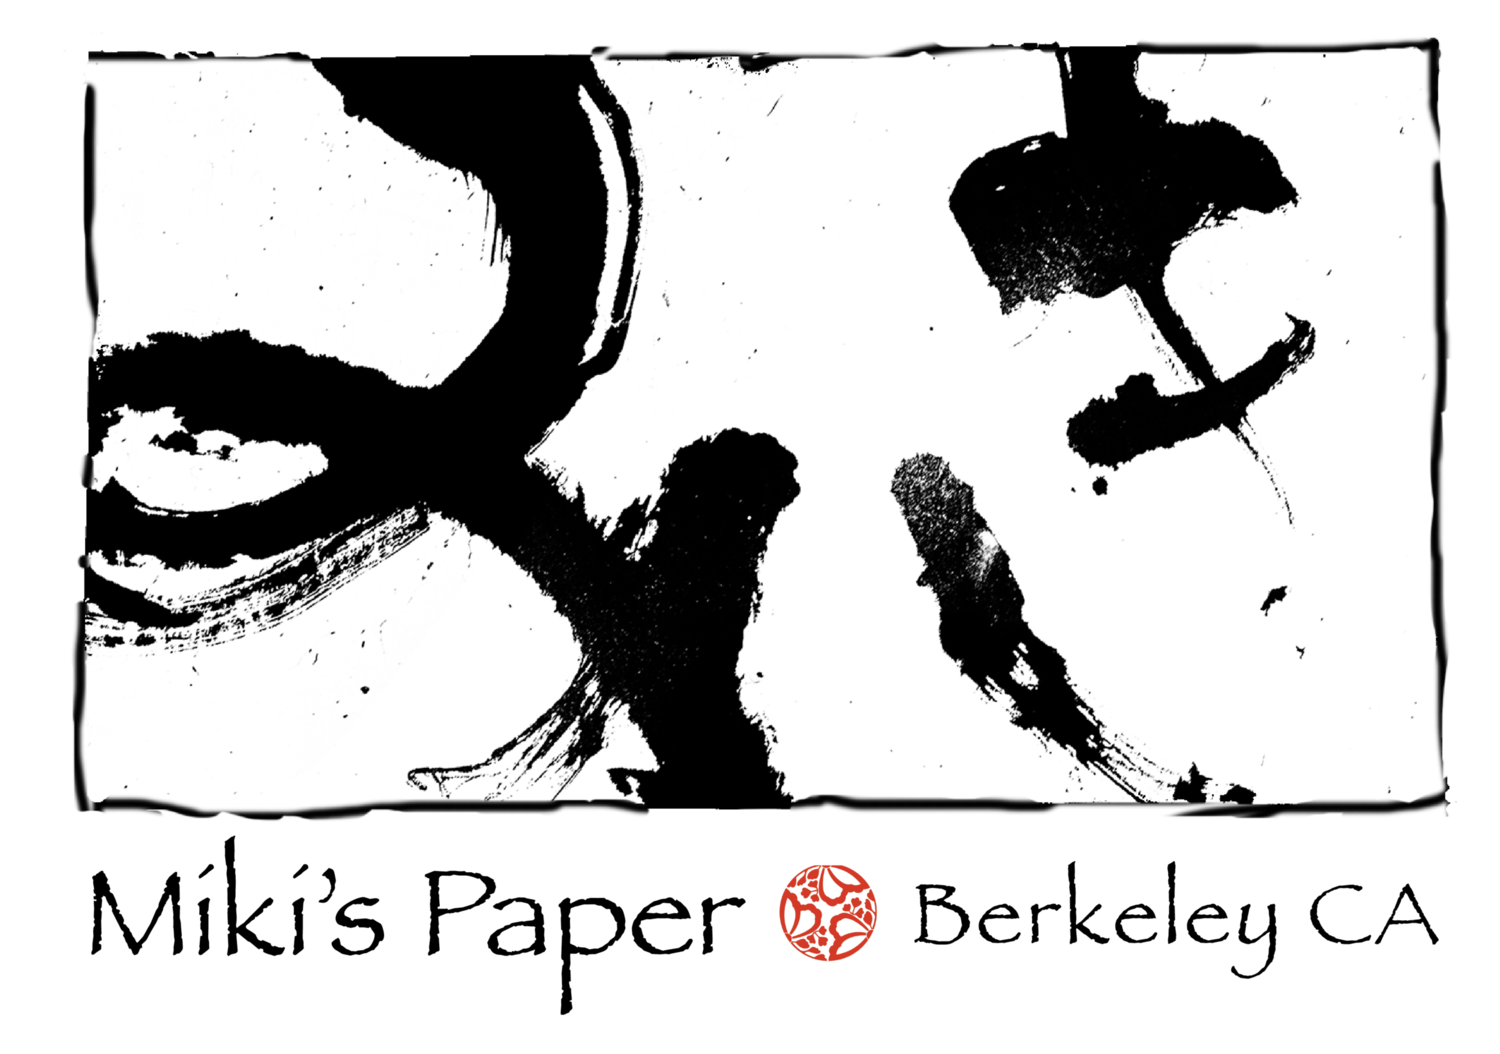 Miki's Paper